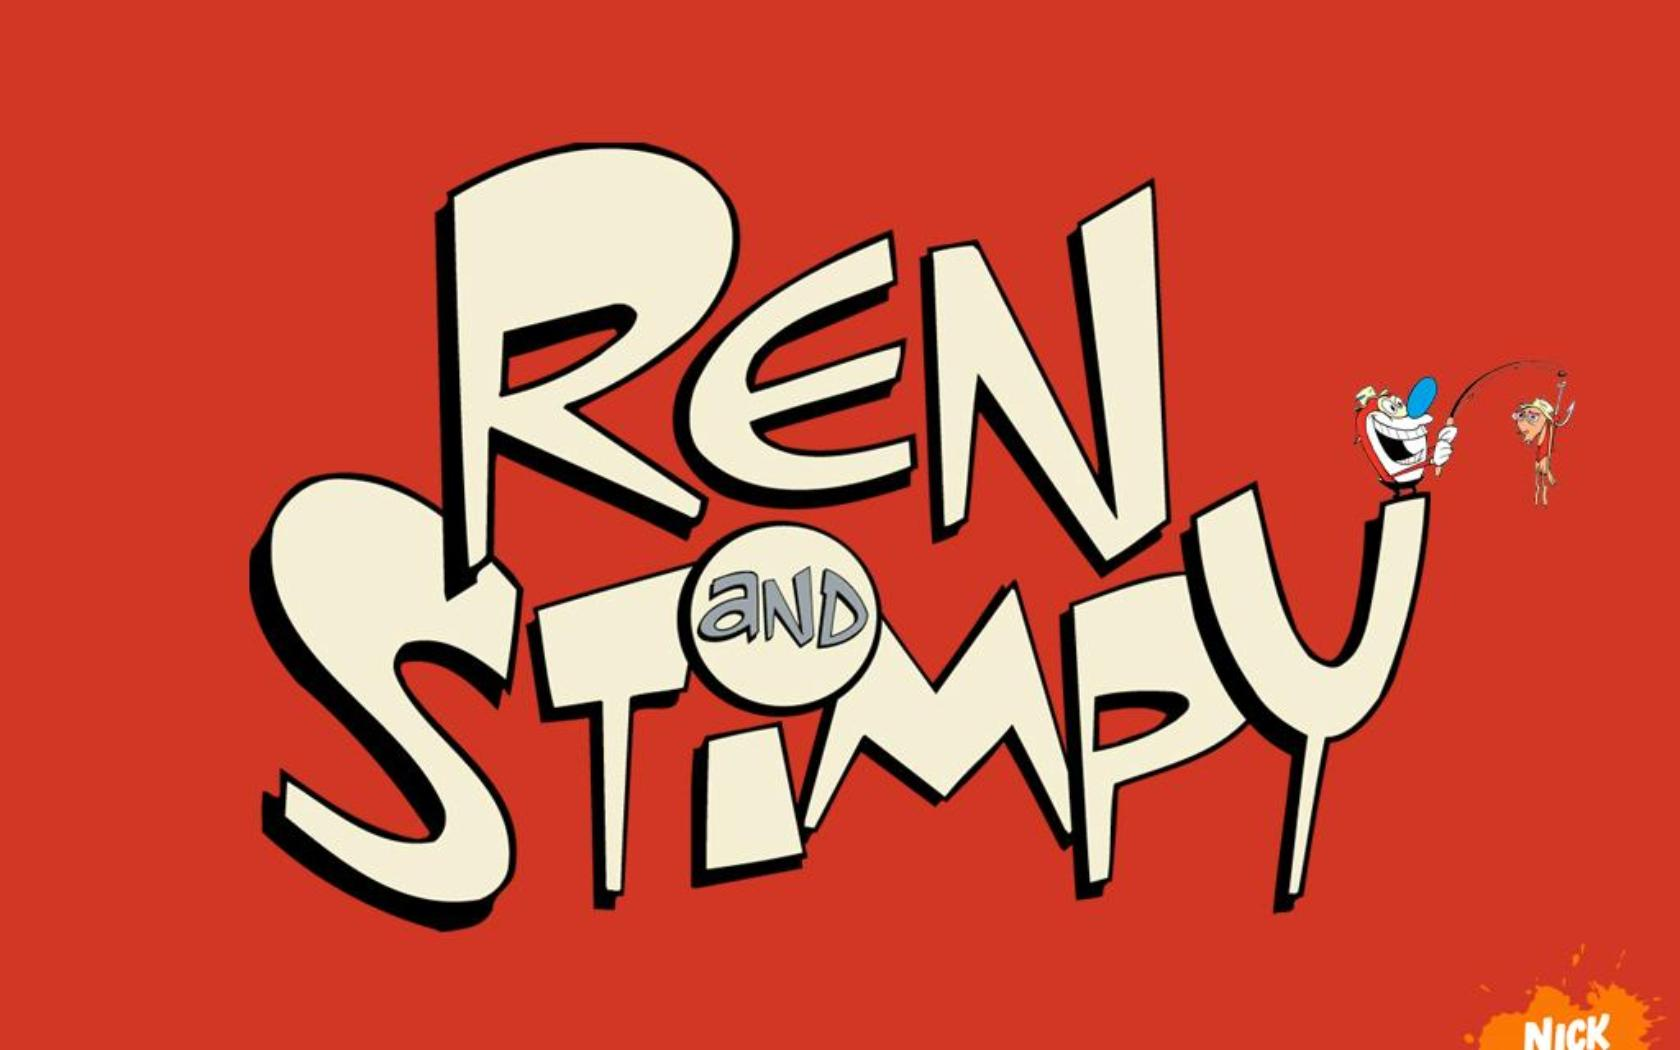 news and entertainment ren and stimpy jan 04 2013 21 37 42